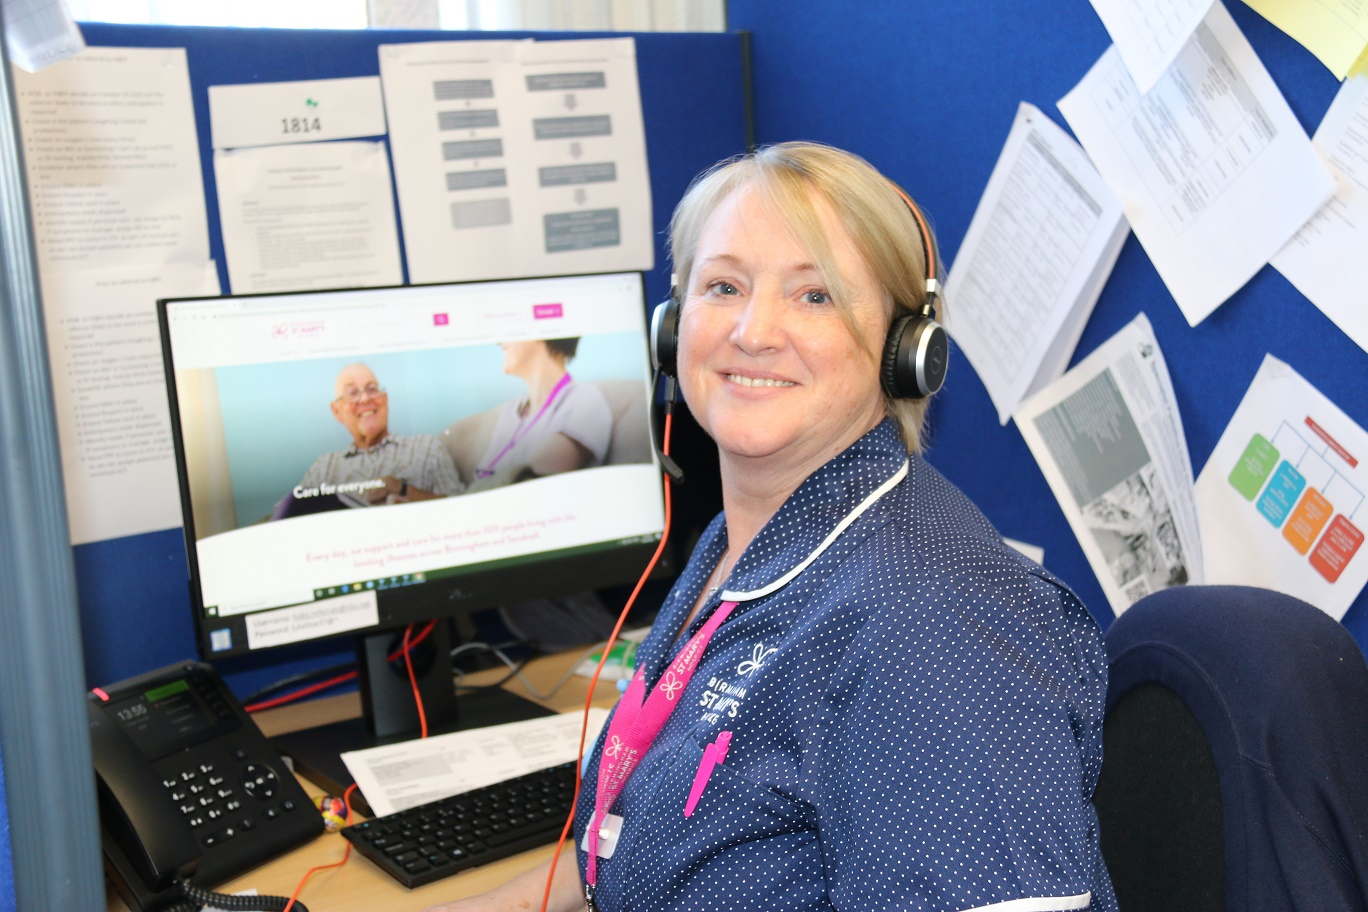 Birmingham hospices partner to launch single hub for care during Covid-19